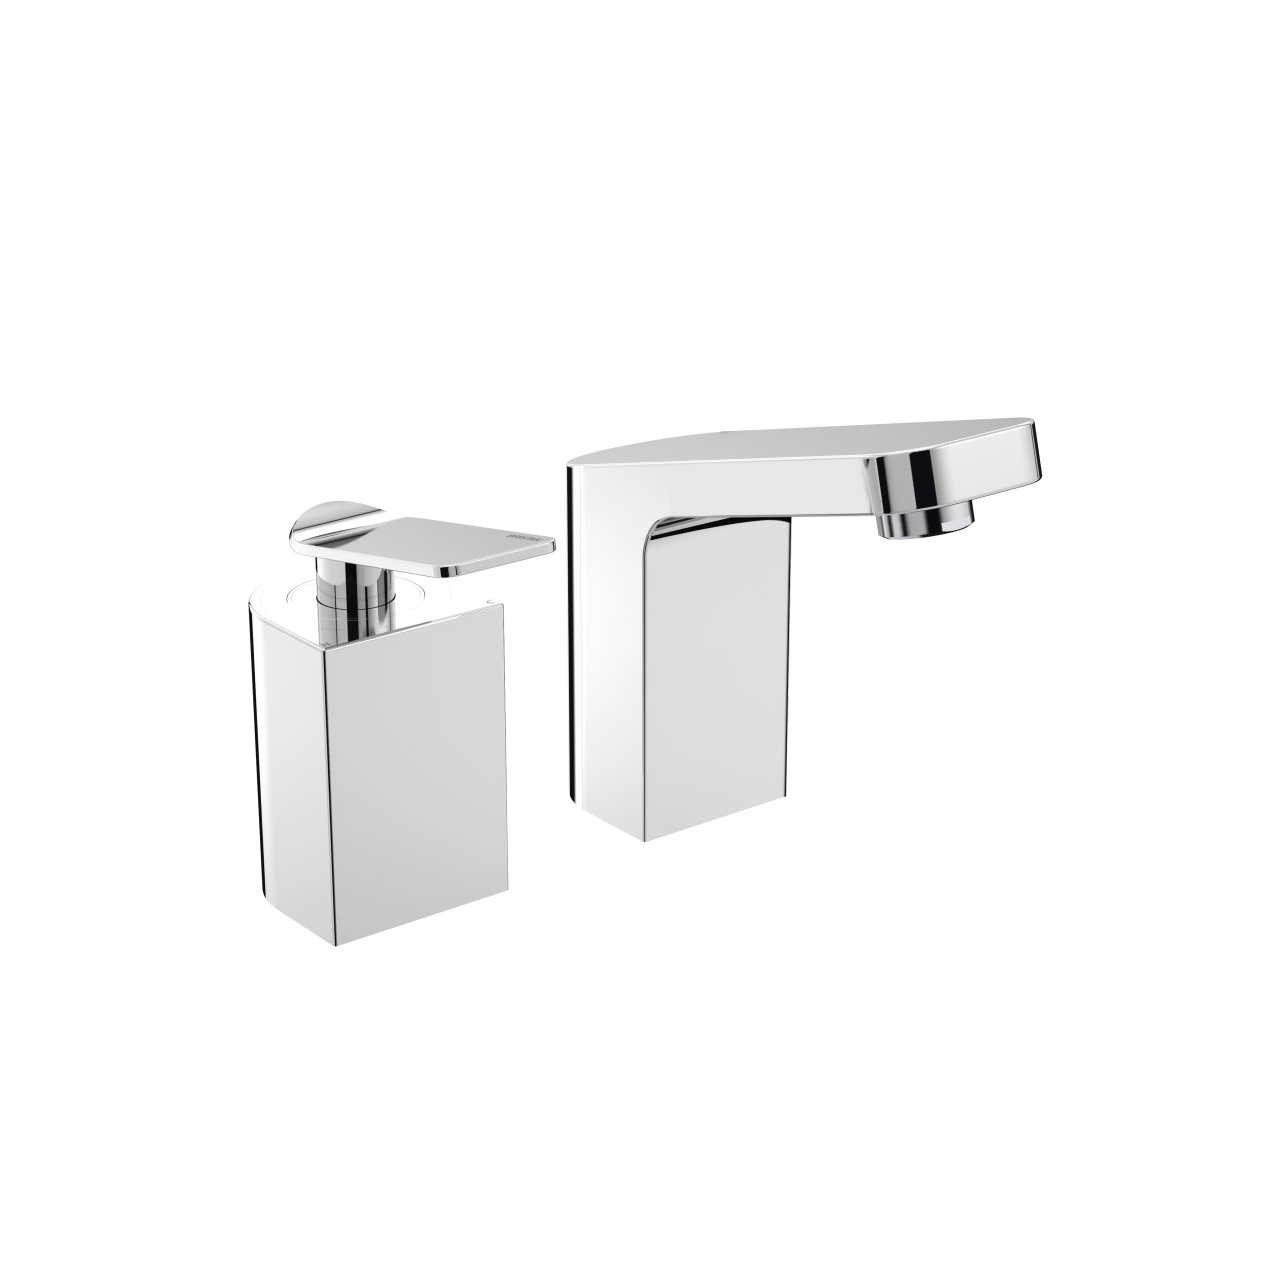 Bristan Alp Chrome 2 Tap Hole Bath Filler - ALP-2HBF-C